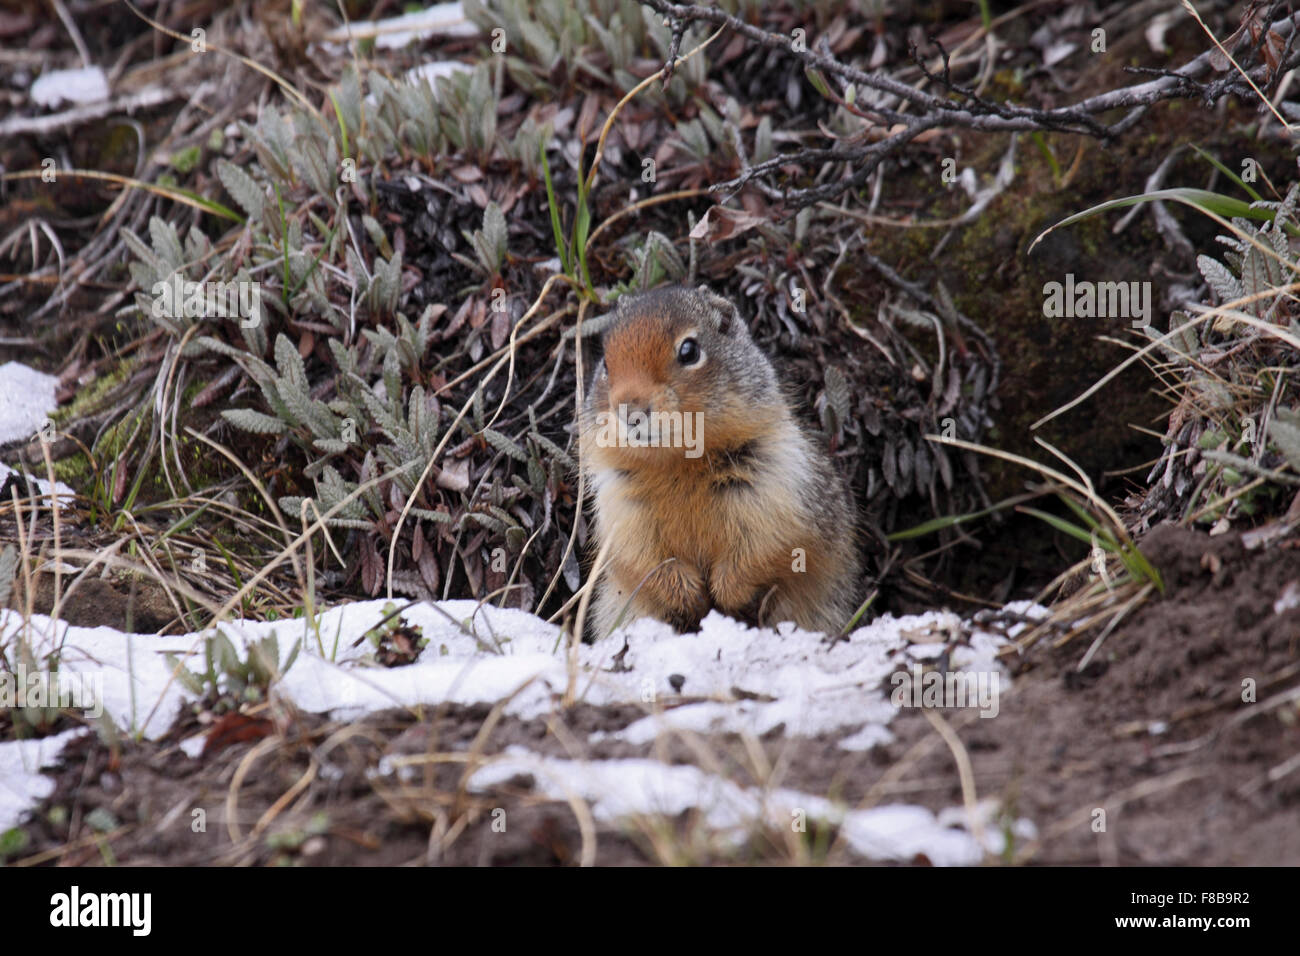 Columbian ground squirrel at burrow entrance having emerged from Winter hibernation on mountainside in Canada - Stock Image